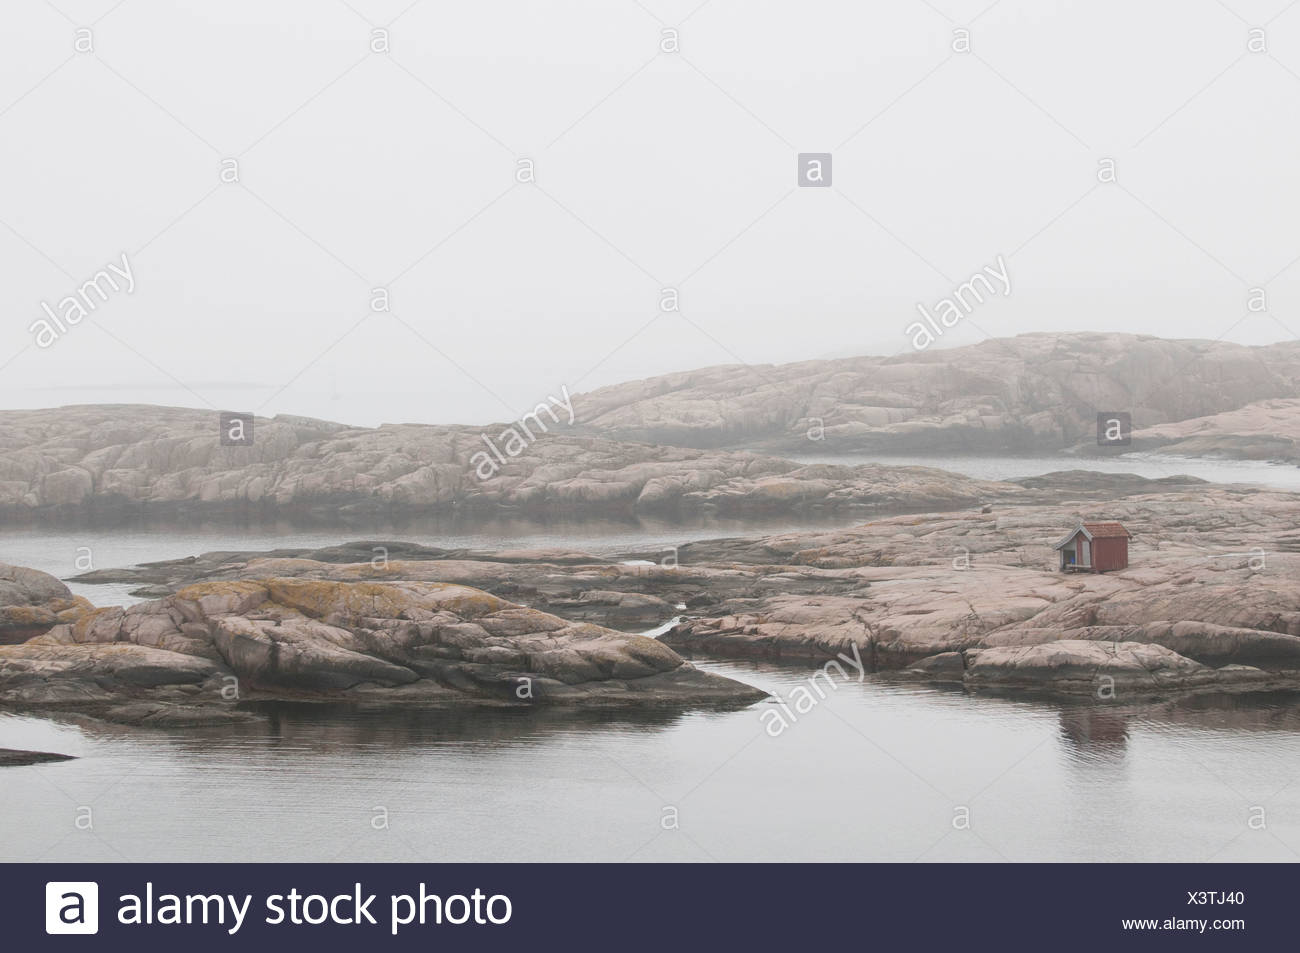 Bare rocks in the mist - Stock Image